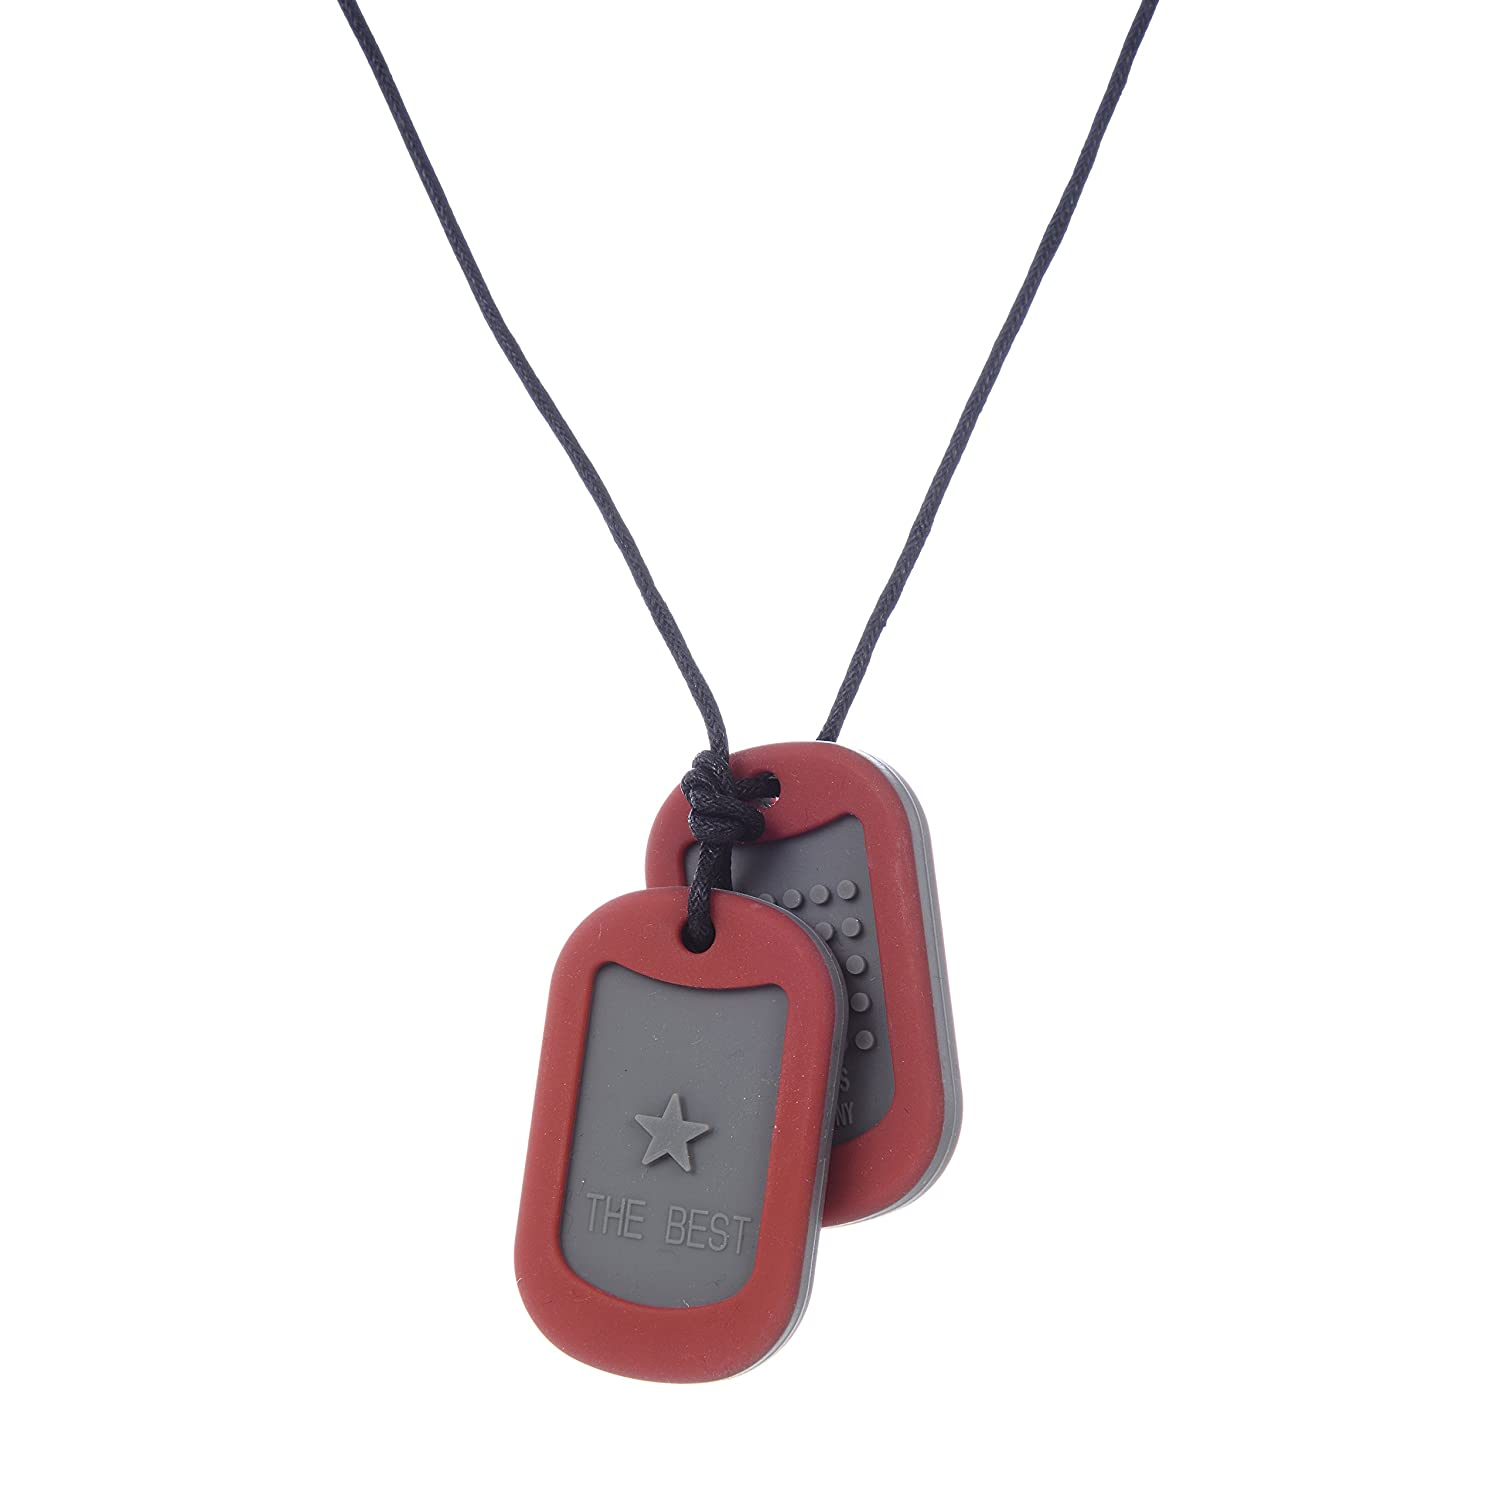 Chewbeads Juniorbeads Dog Tag Necklace, Red CHB-3300-RED